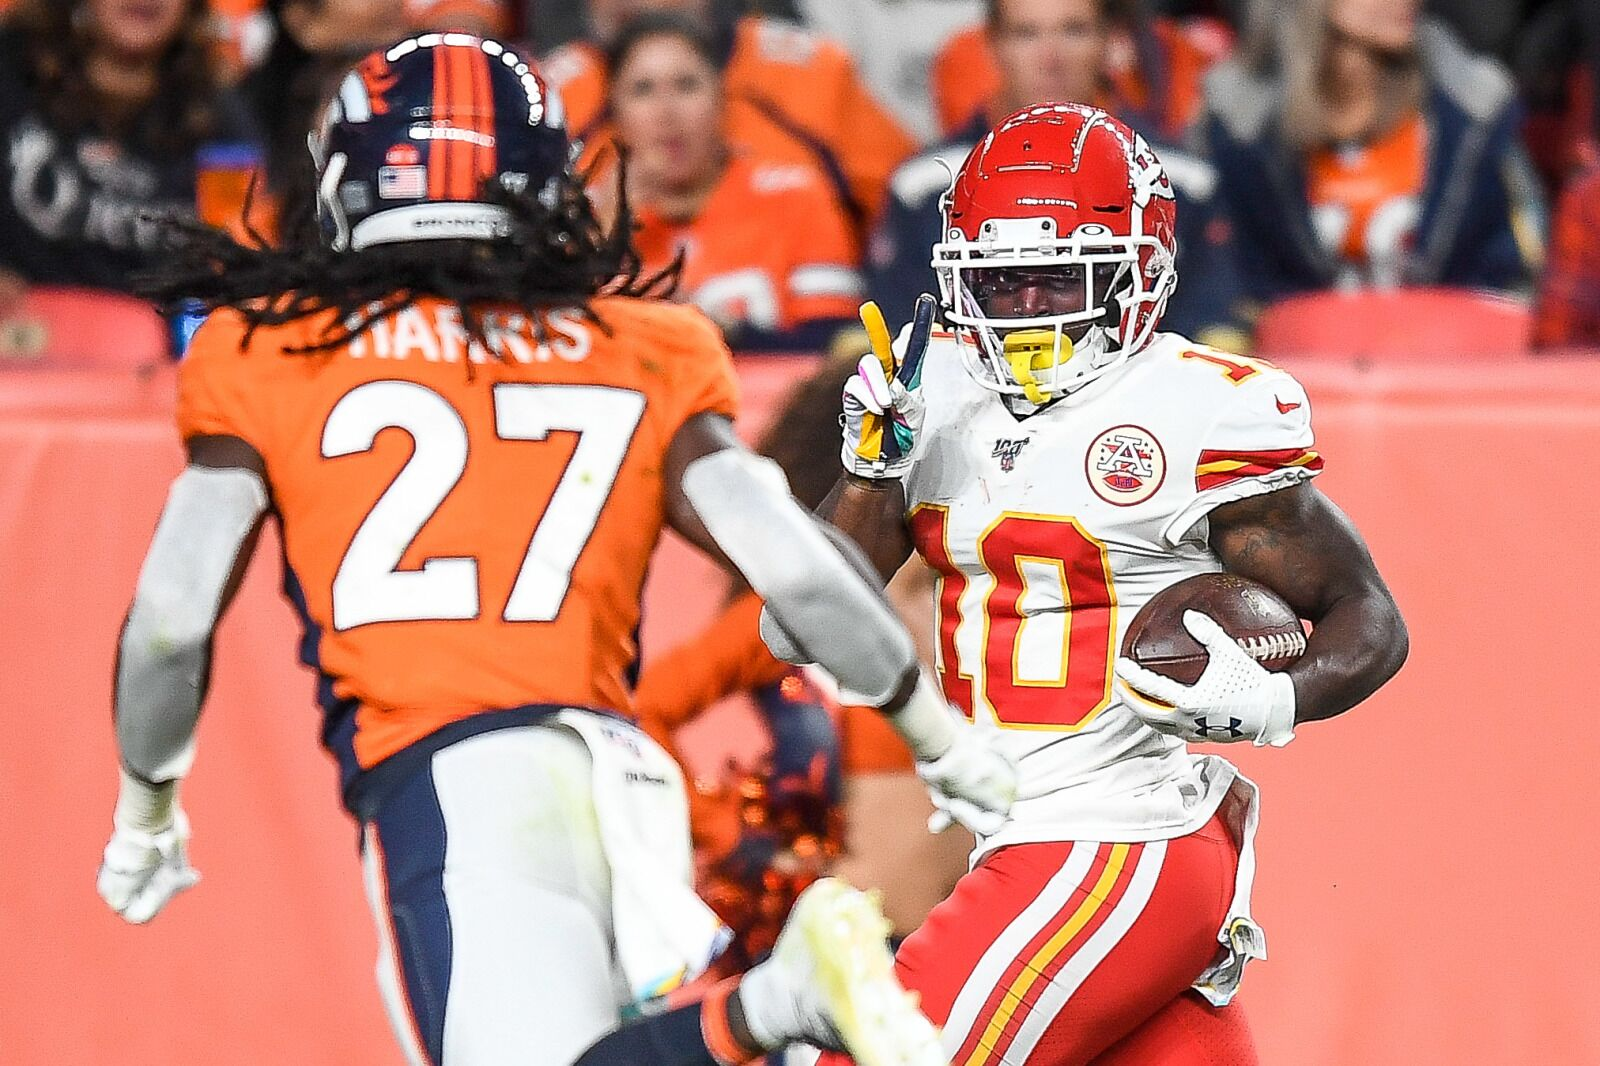 Broncos vs. Chiefs, Week 15: How to watch, start time, live stream, TV info and more